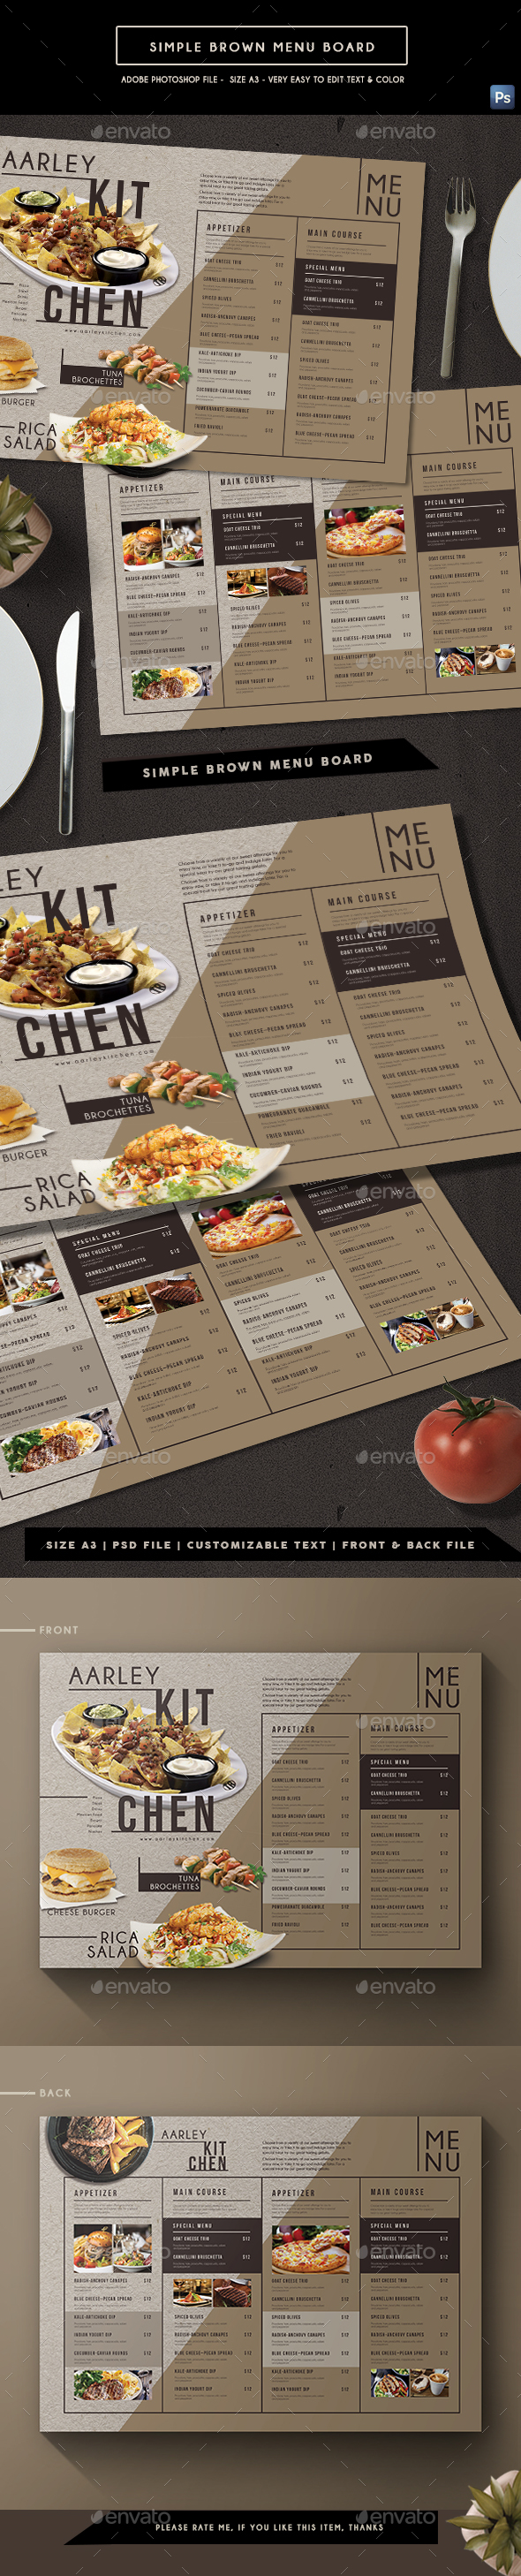 Simple Brown Menu Board 02 - Food Menus Print Templates